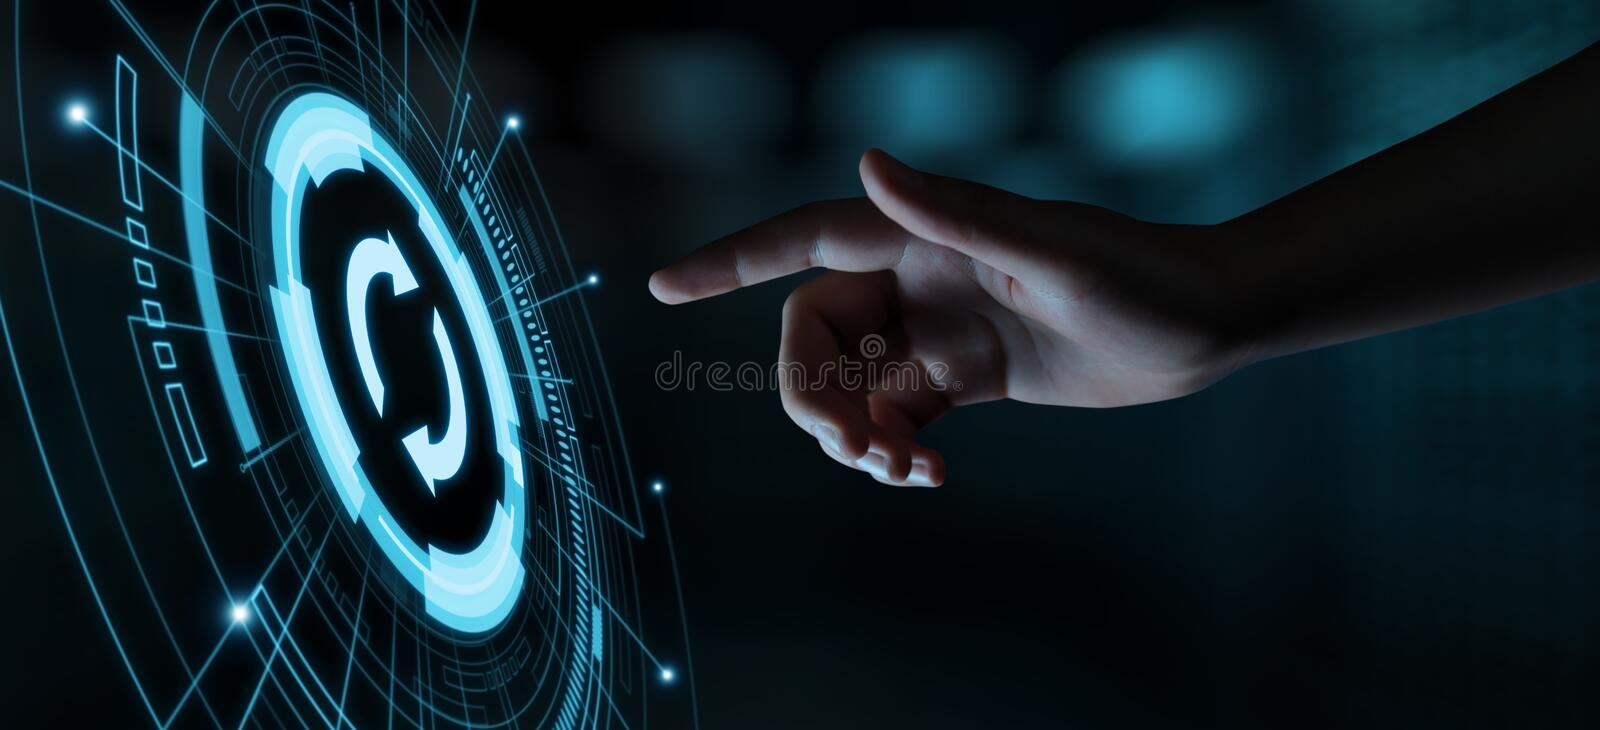 Update Software Computer Program Upgrade Business technology Internet Concept royalty free stock photo